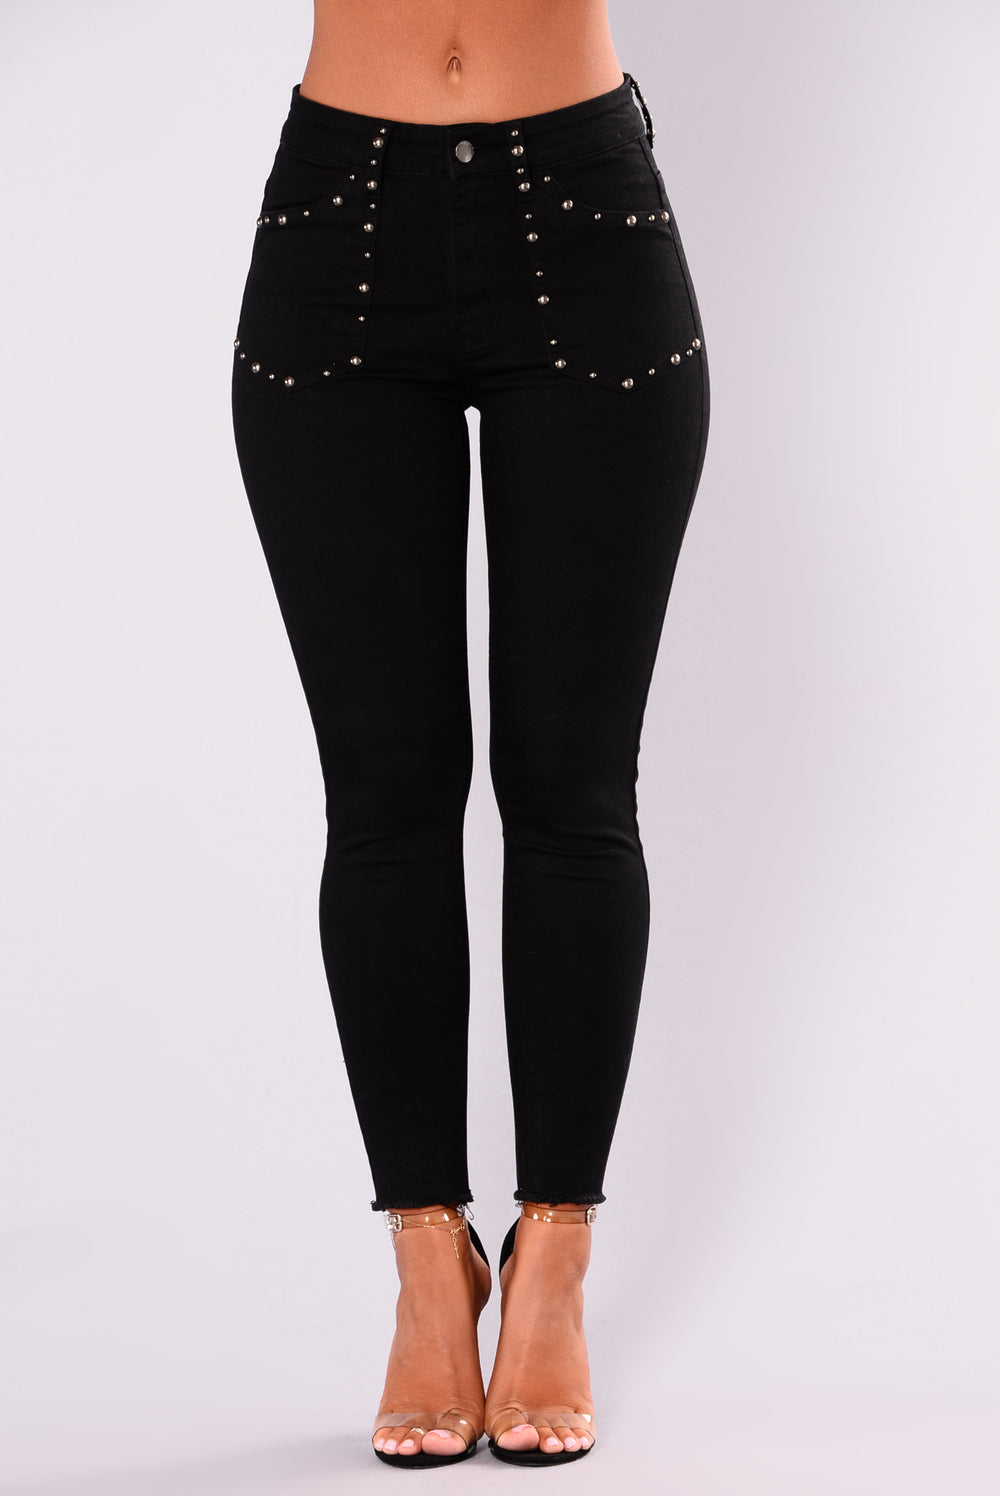 Day After Day Studded Jeans - Black